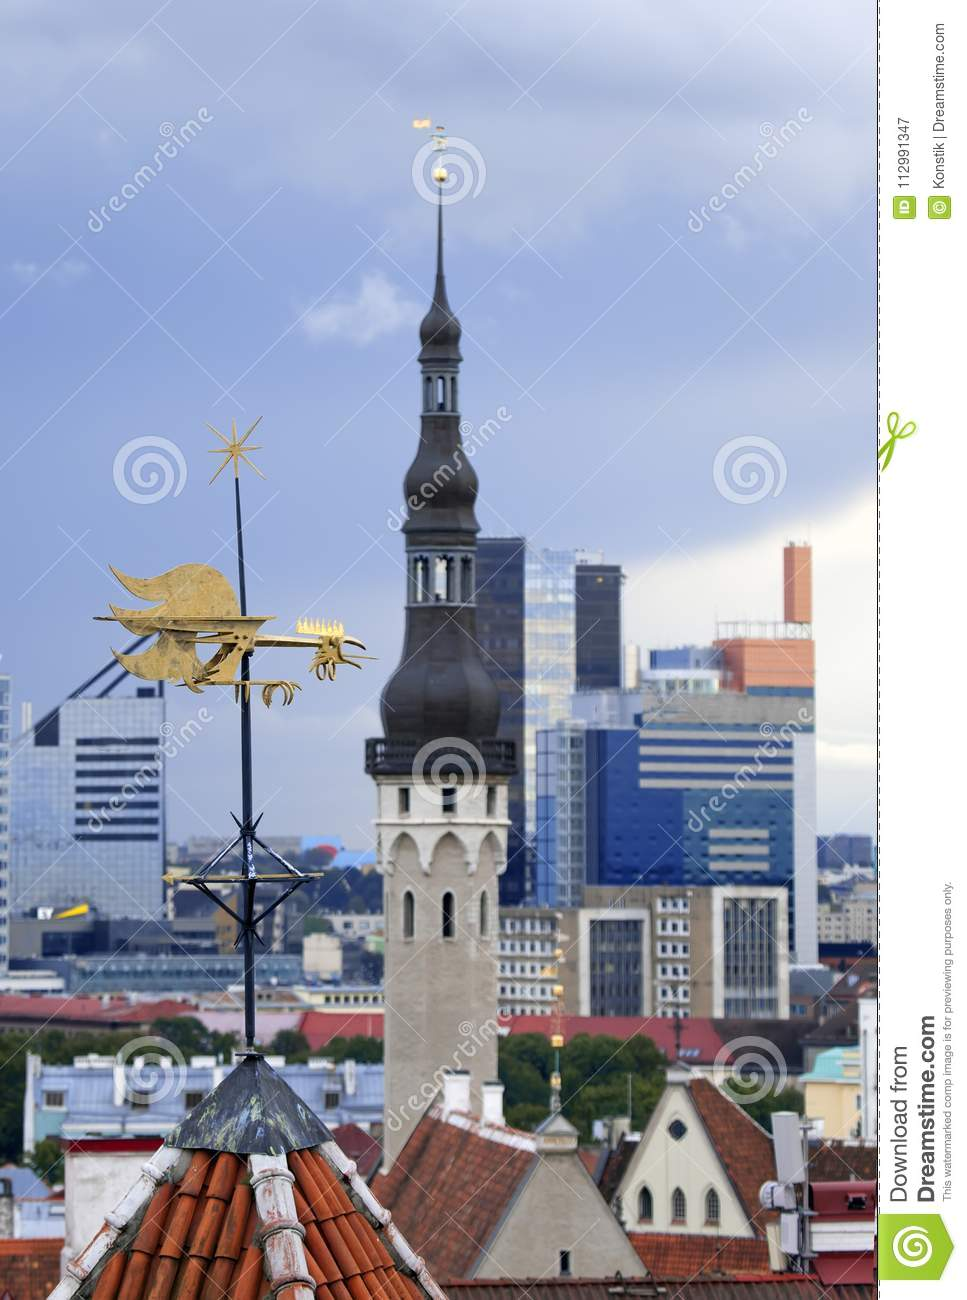 Old city, Tallinn, Estonia. A medieval weather vane rooster, bird over the city